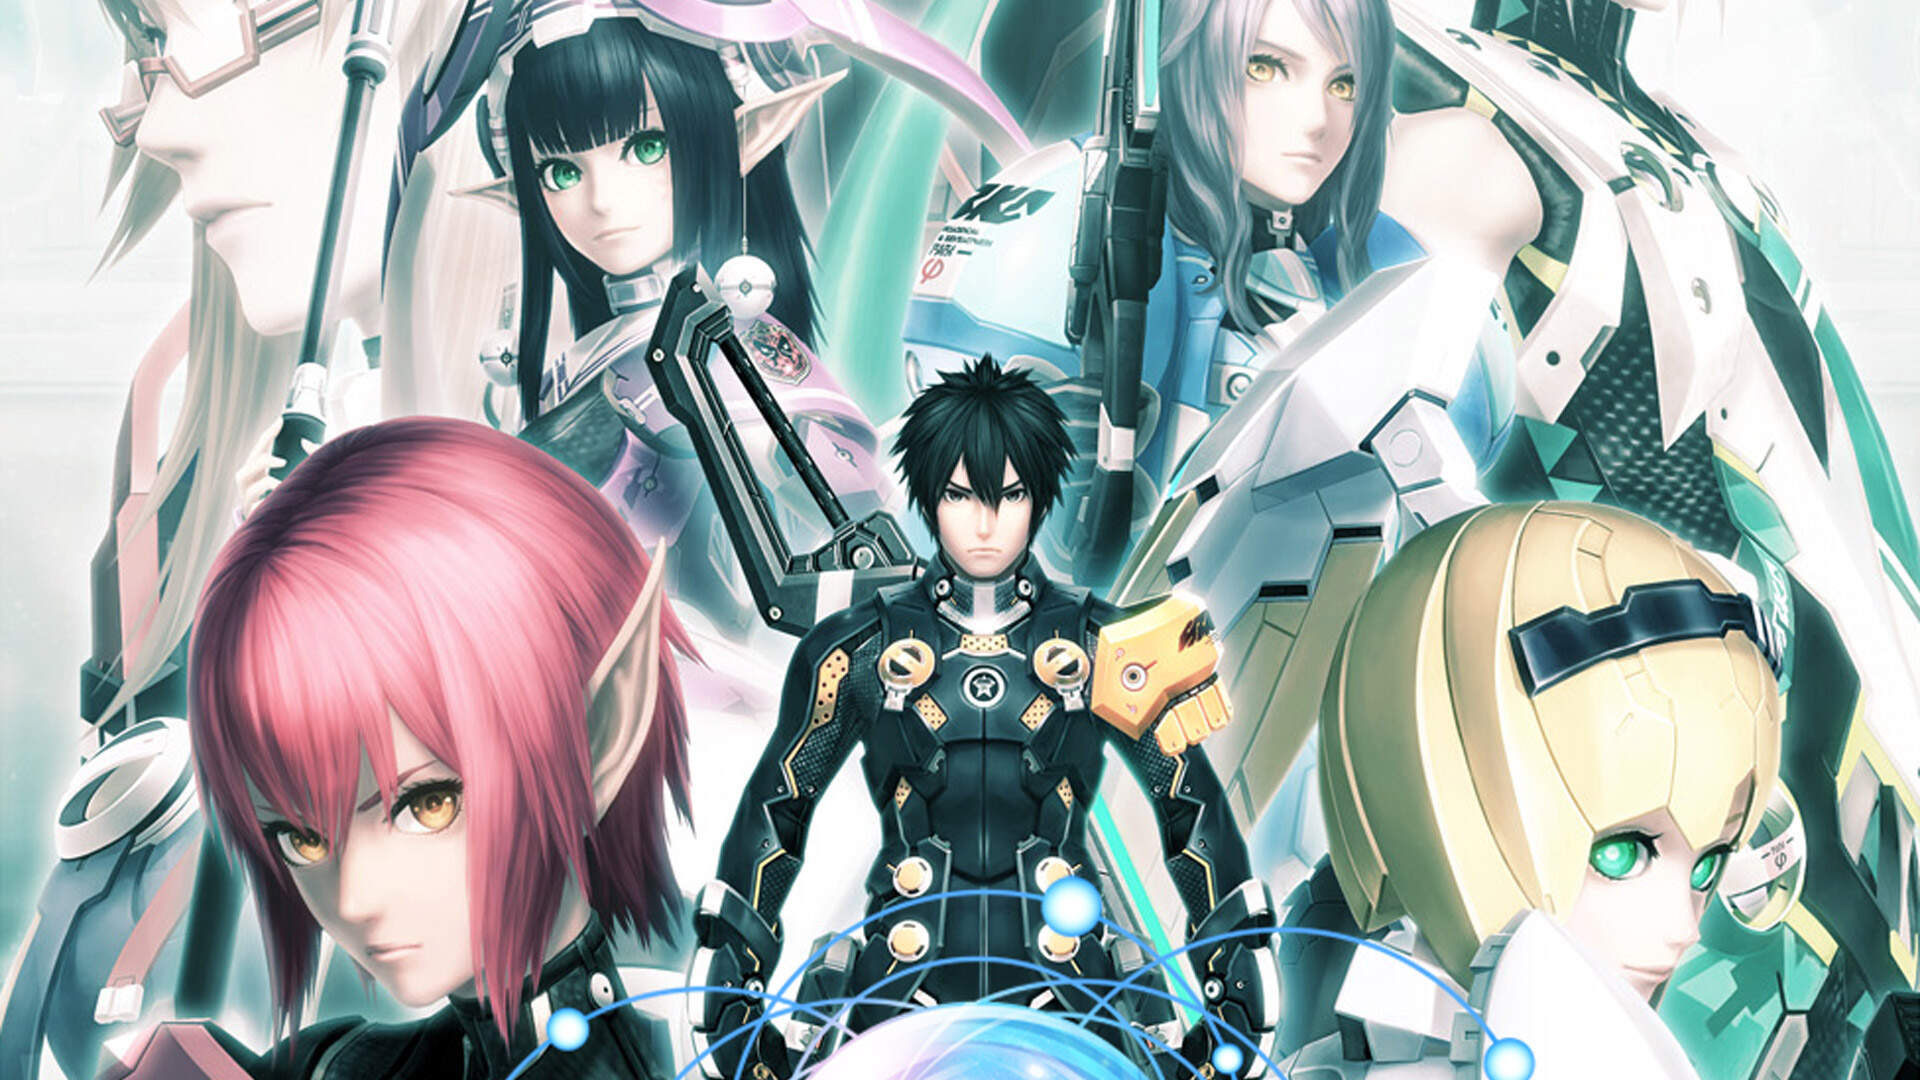 Phantasy Star Online 2 Release Date, Platforms, PSO2 English Port - Everything we Know